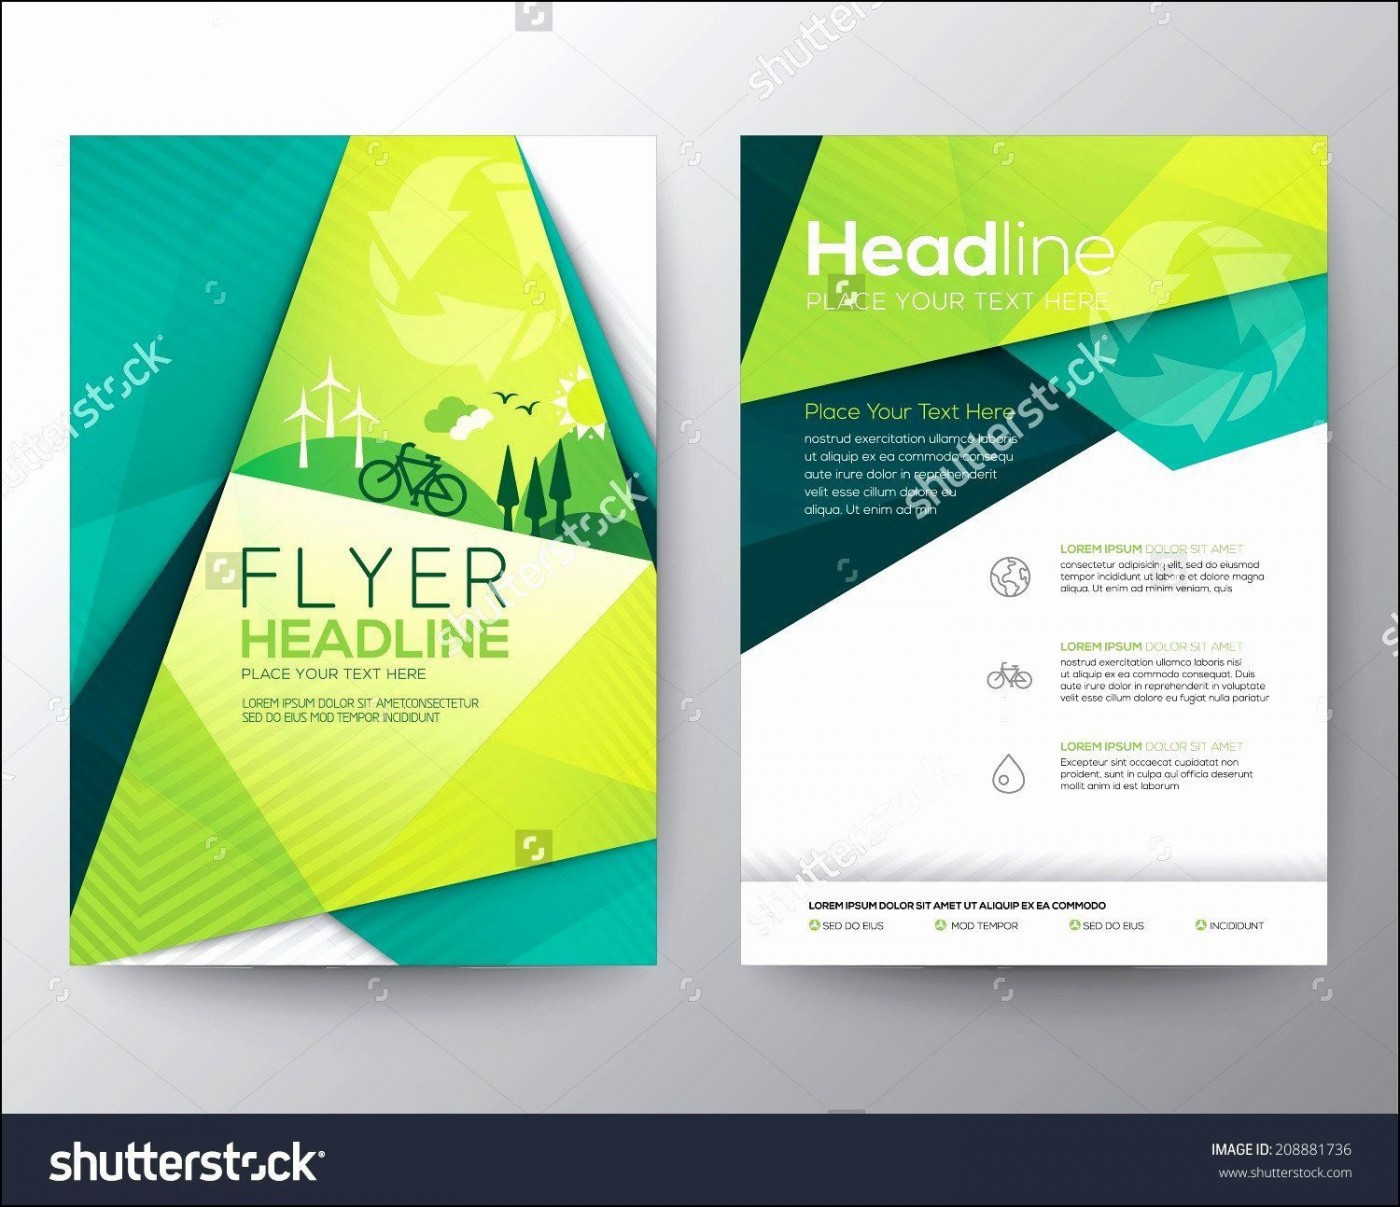 001 Impressive Photoshop Brochure Design Template Free Download Photo 1400